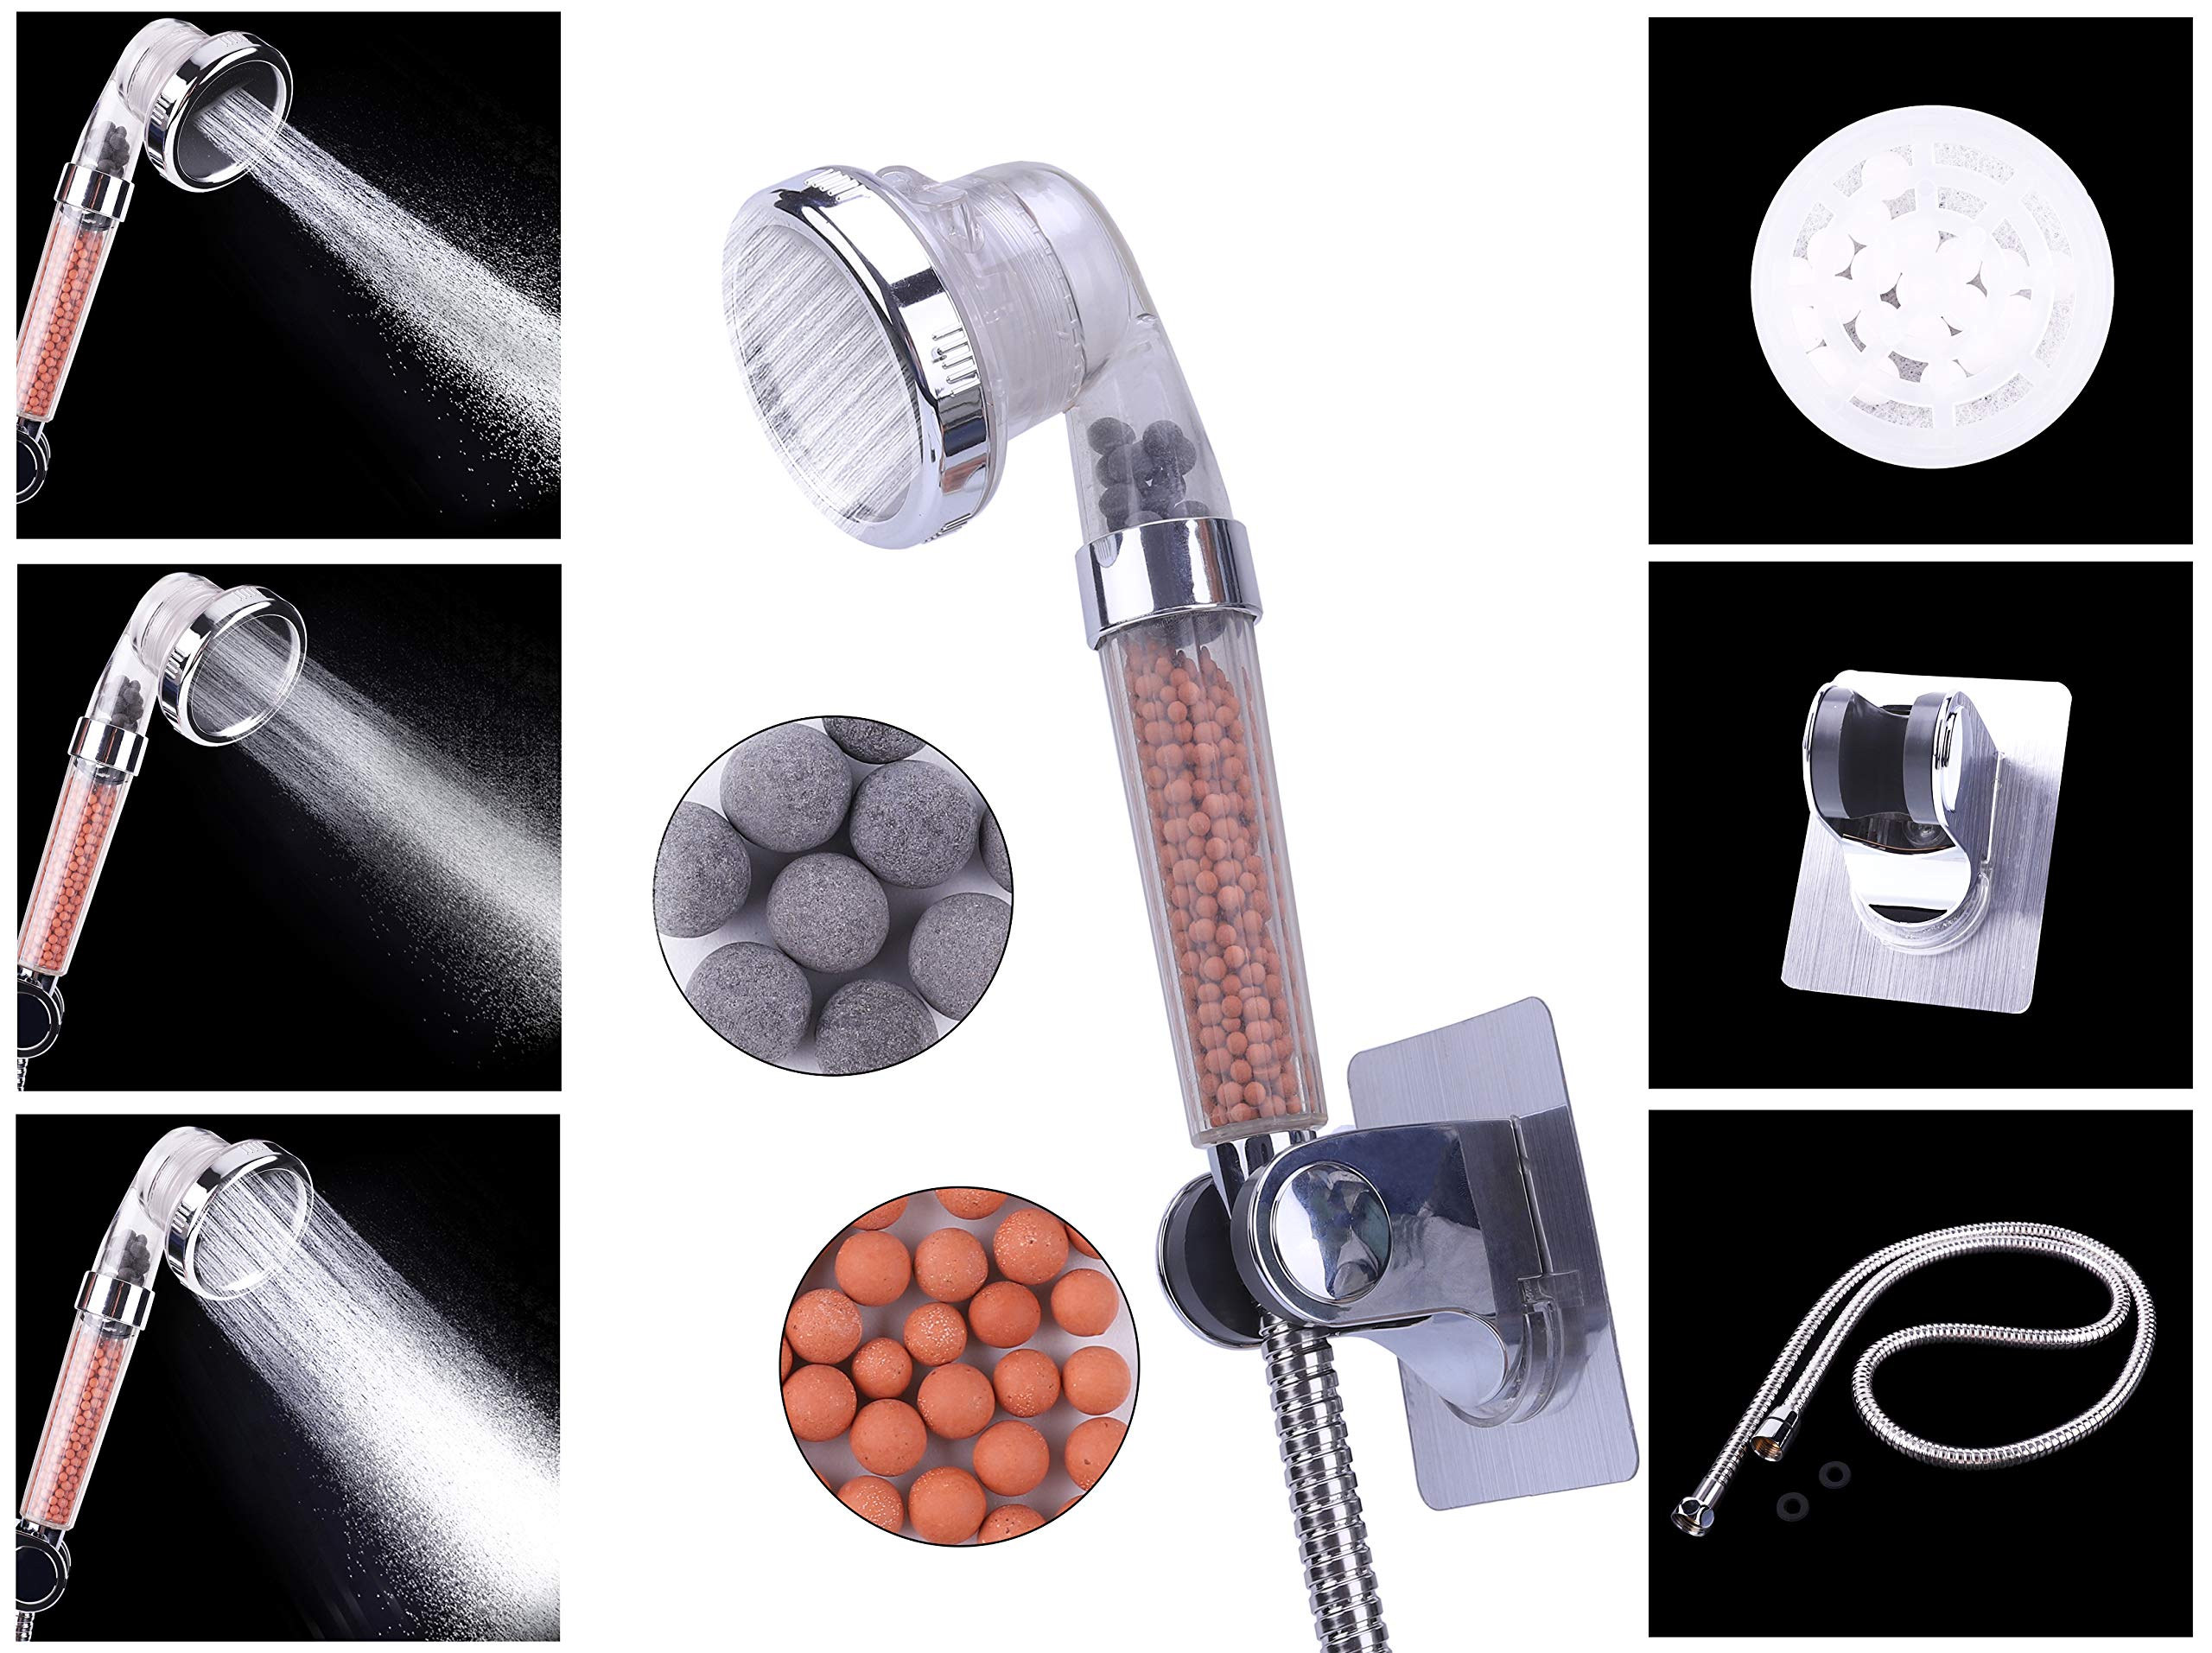 Filtered Hand Held Shower Head Kit, Water Saving Home Spa Shower Head with 3 Settings, Reduces Hair Loss, Purify Water&Remove Chlorine, Hose & Mount Included, Easy Install (Plus a Shower Hose&Mount)